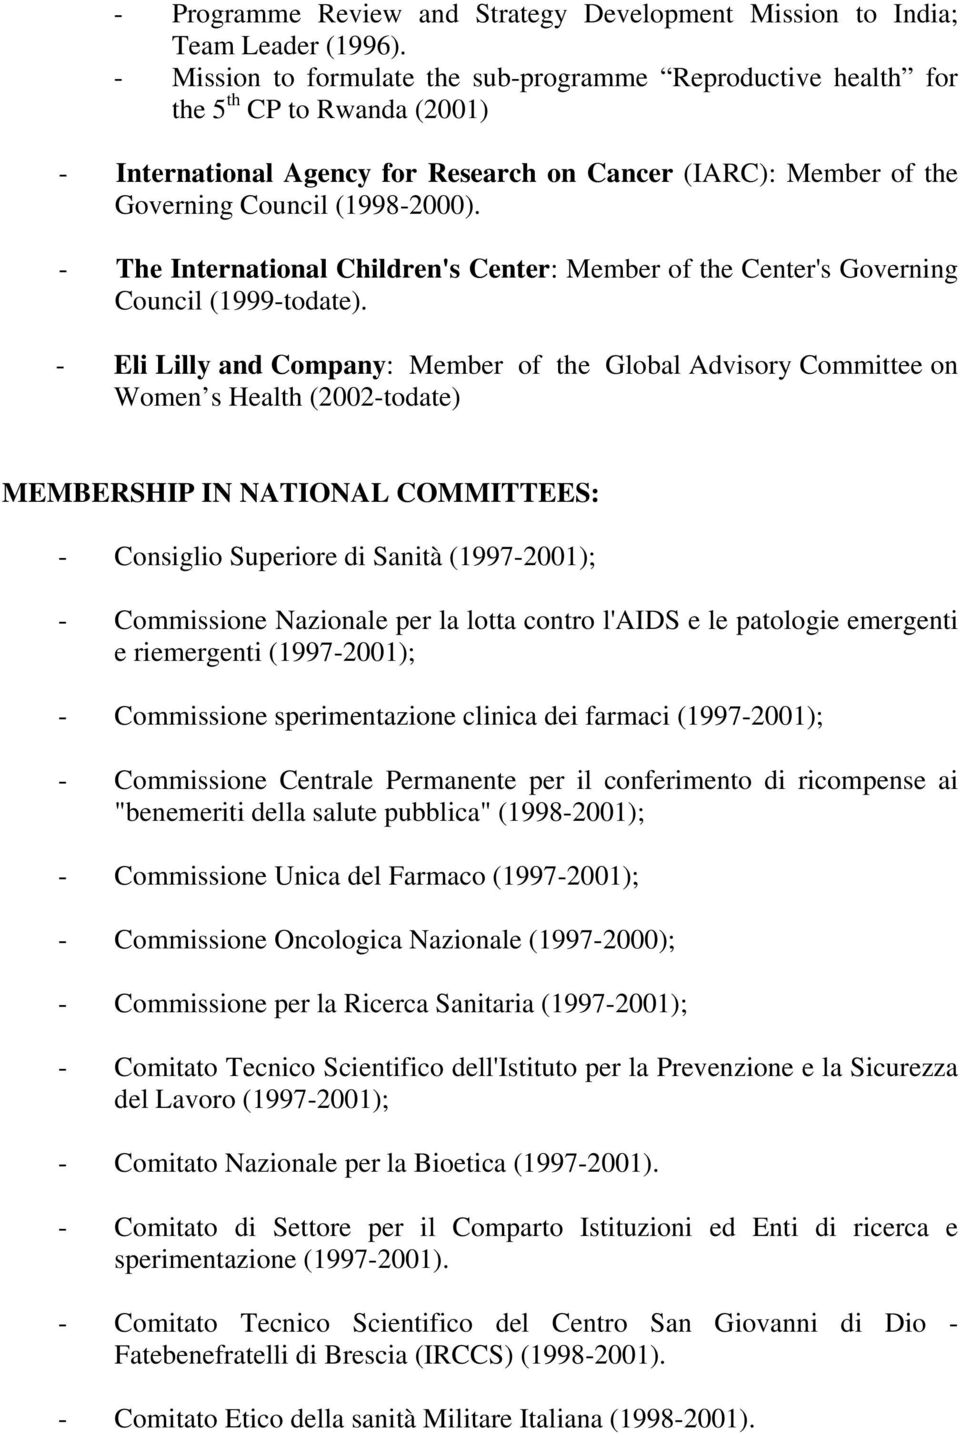 - The International Children's Center: Member of the Center's Governing Council (1999-todate).